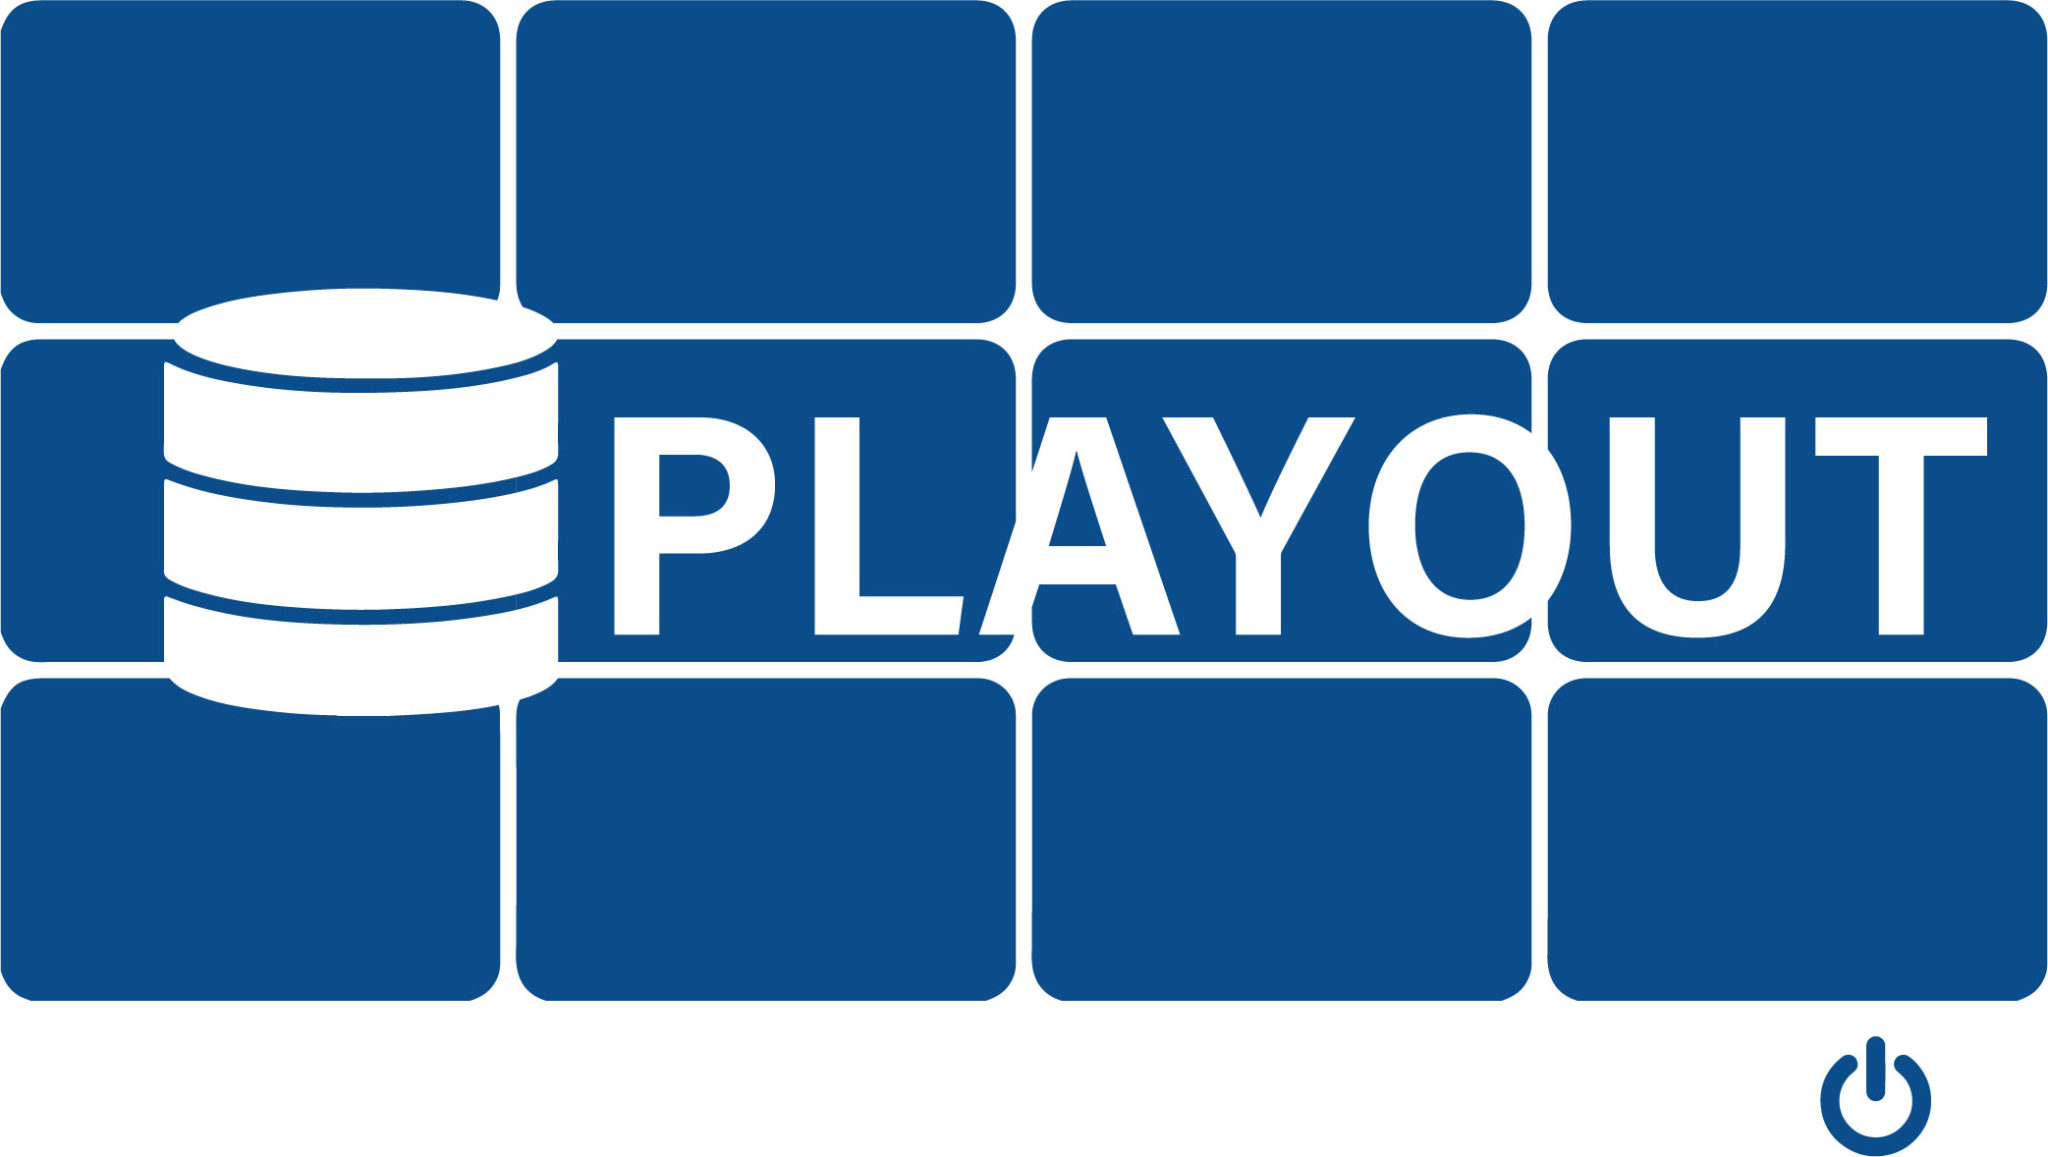 TAG Playout Graphic